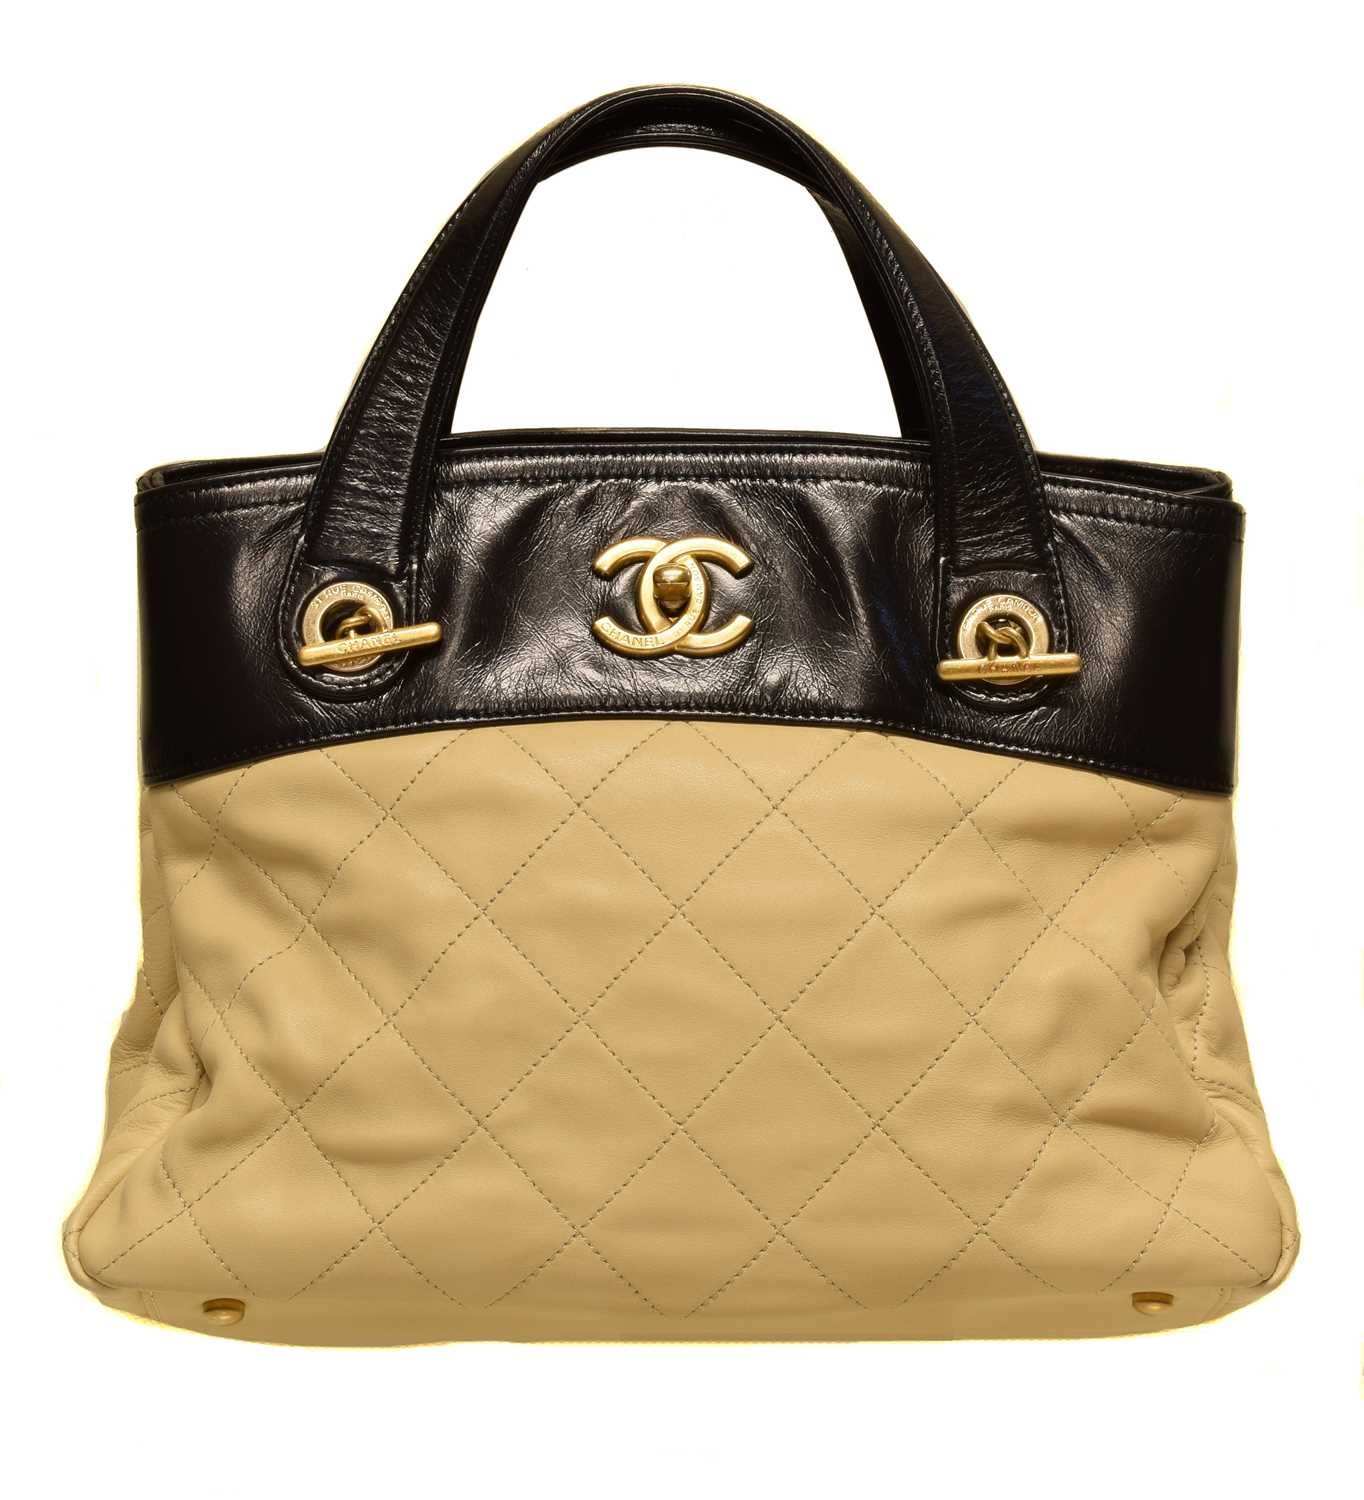 Chanel In The Mix Shoulder Bag